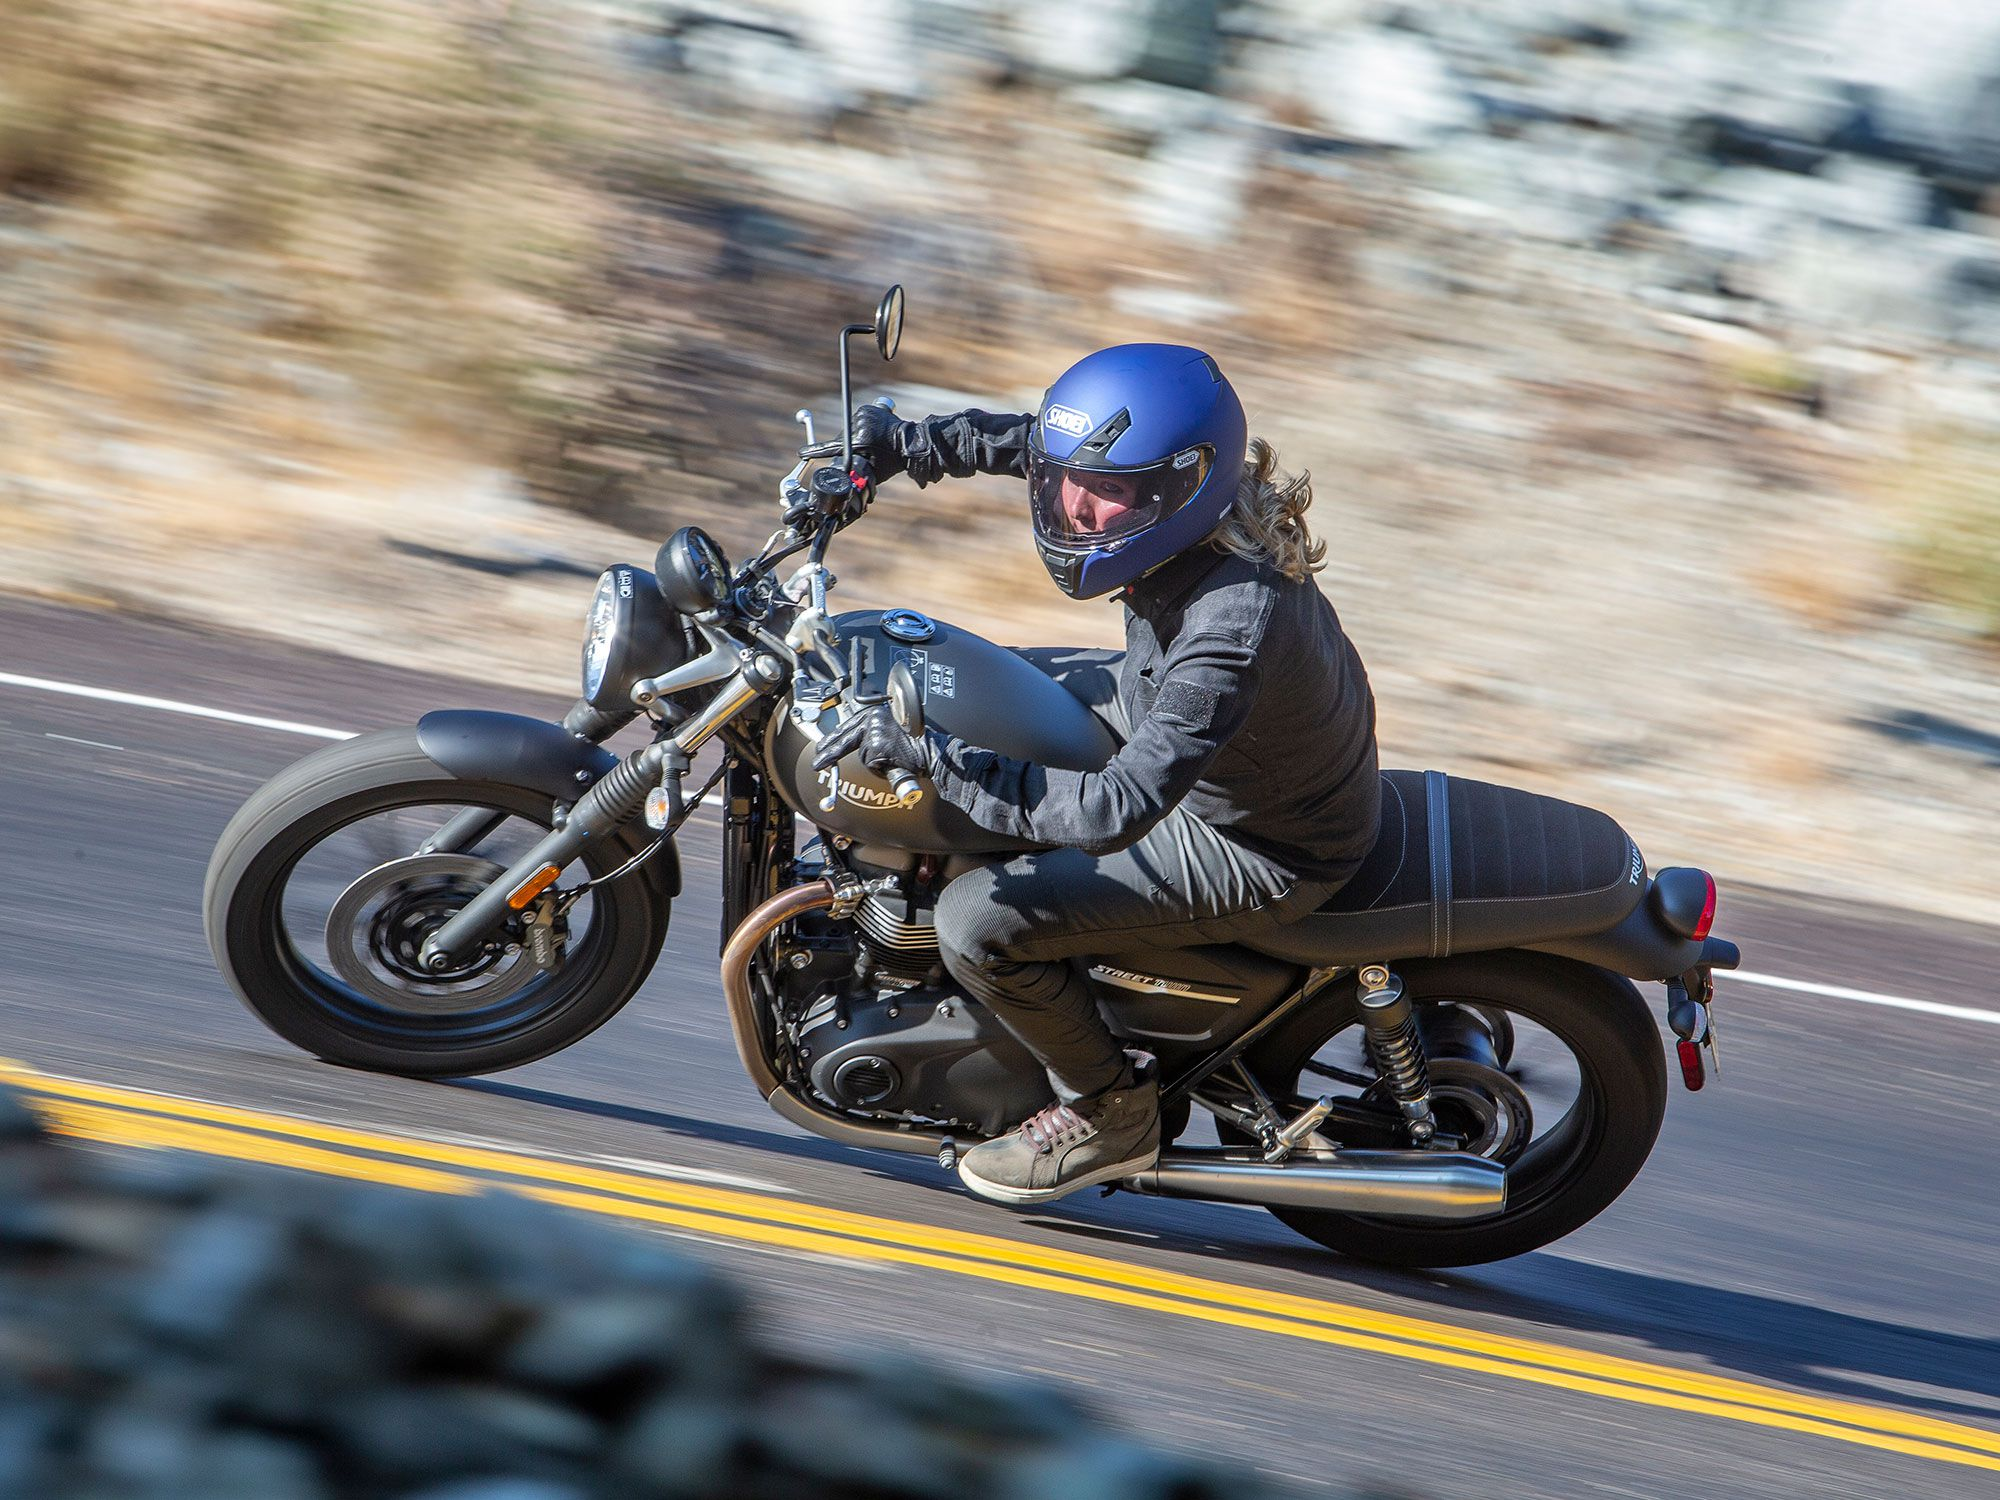 The Street Twin may be a bit pricier than some of the competition, but what it adds in dollars is up-spec components and a whole lot of character.